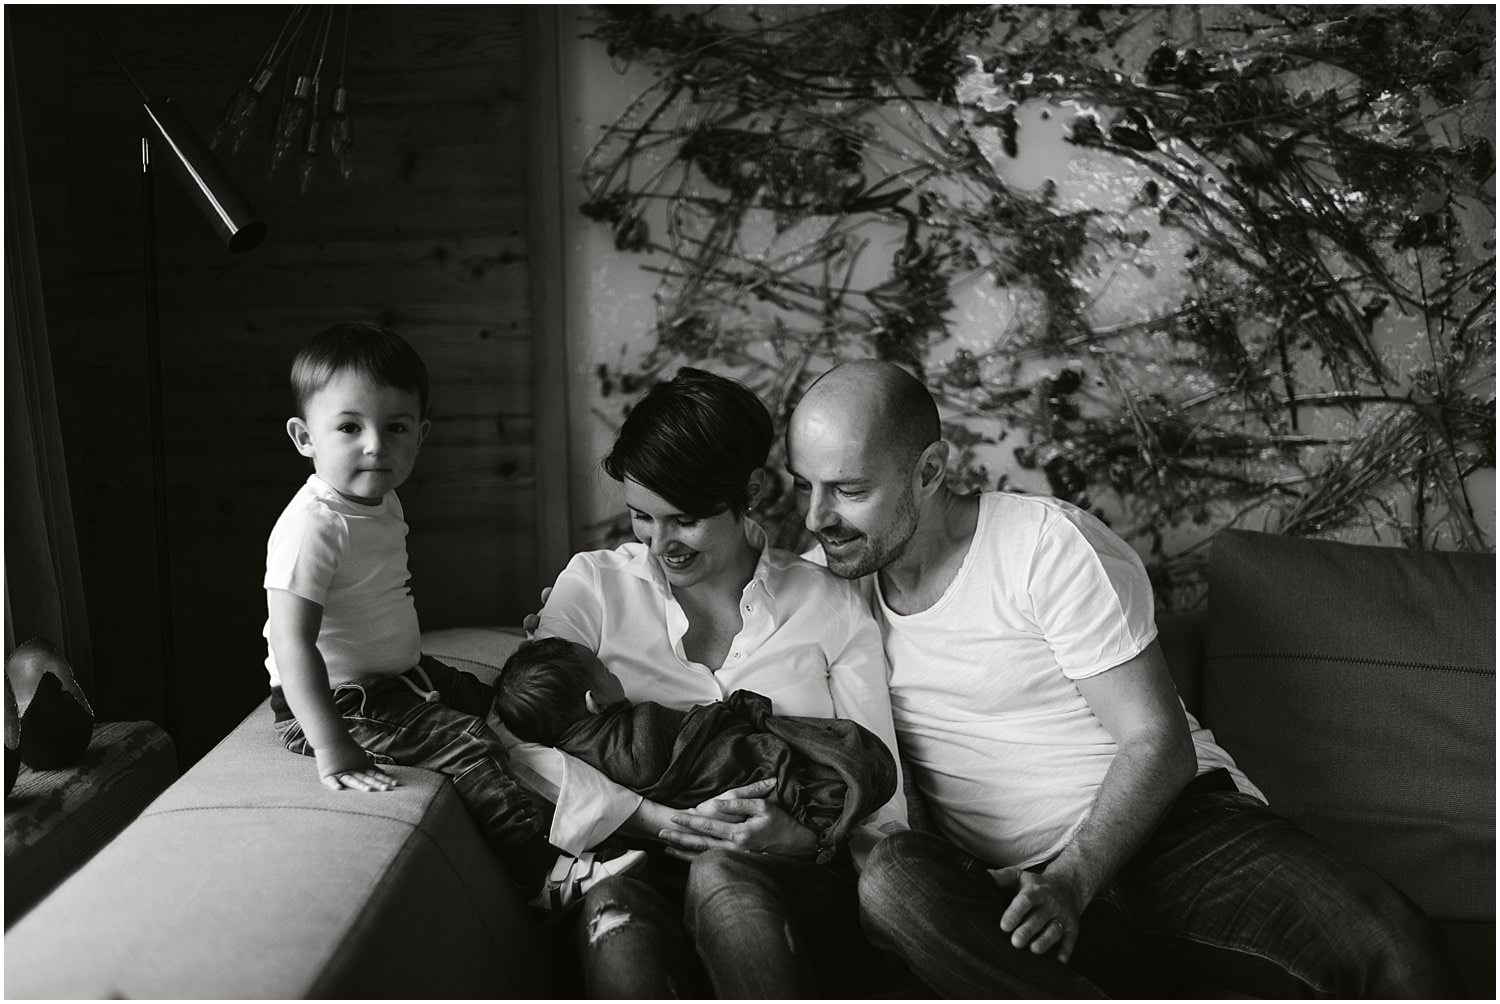 Lifestyle Shooting, Baby Homestory, Neugeborene Homestory, Homeshooting, Lifestyleshooting, natürliche Babybilder, Babybilder, Babyfotograf Ostschweiz, Babyfotograf St. Gallen